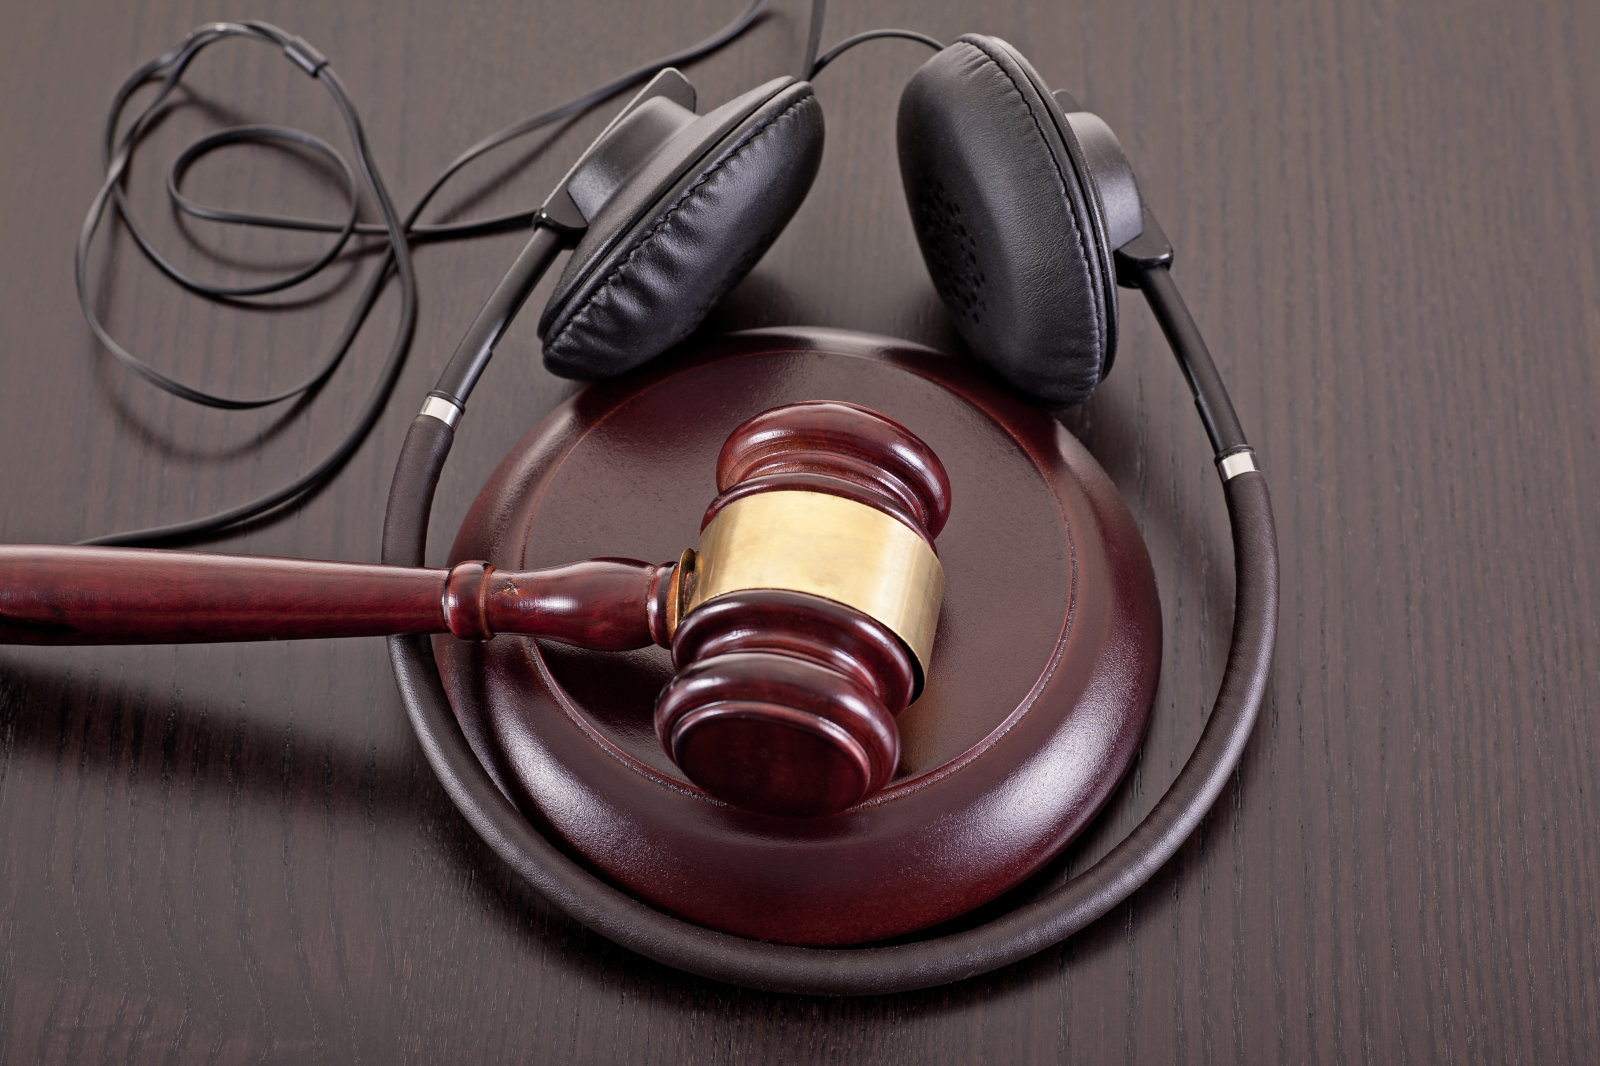 Concept image about music piracy and copyright protection law featuring  a gavel and headphones on tabletop